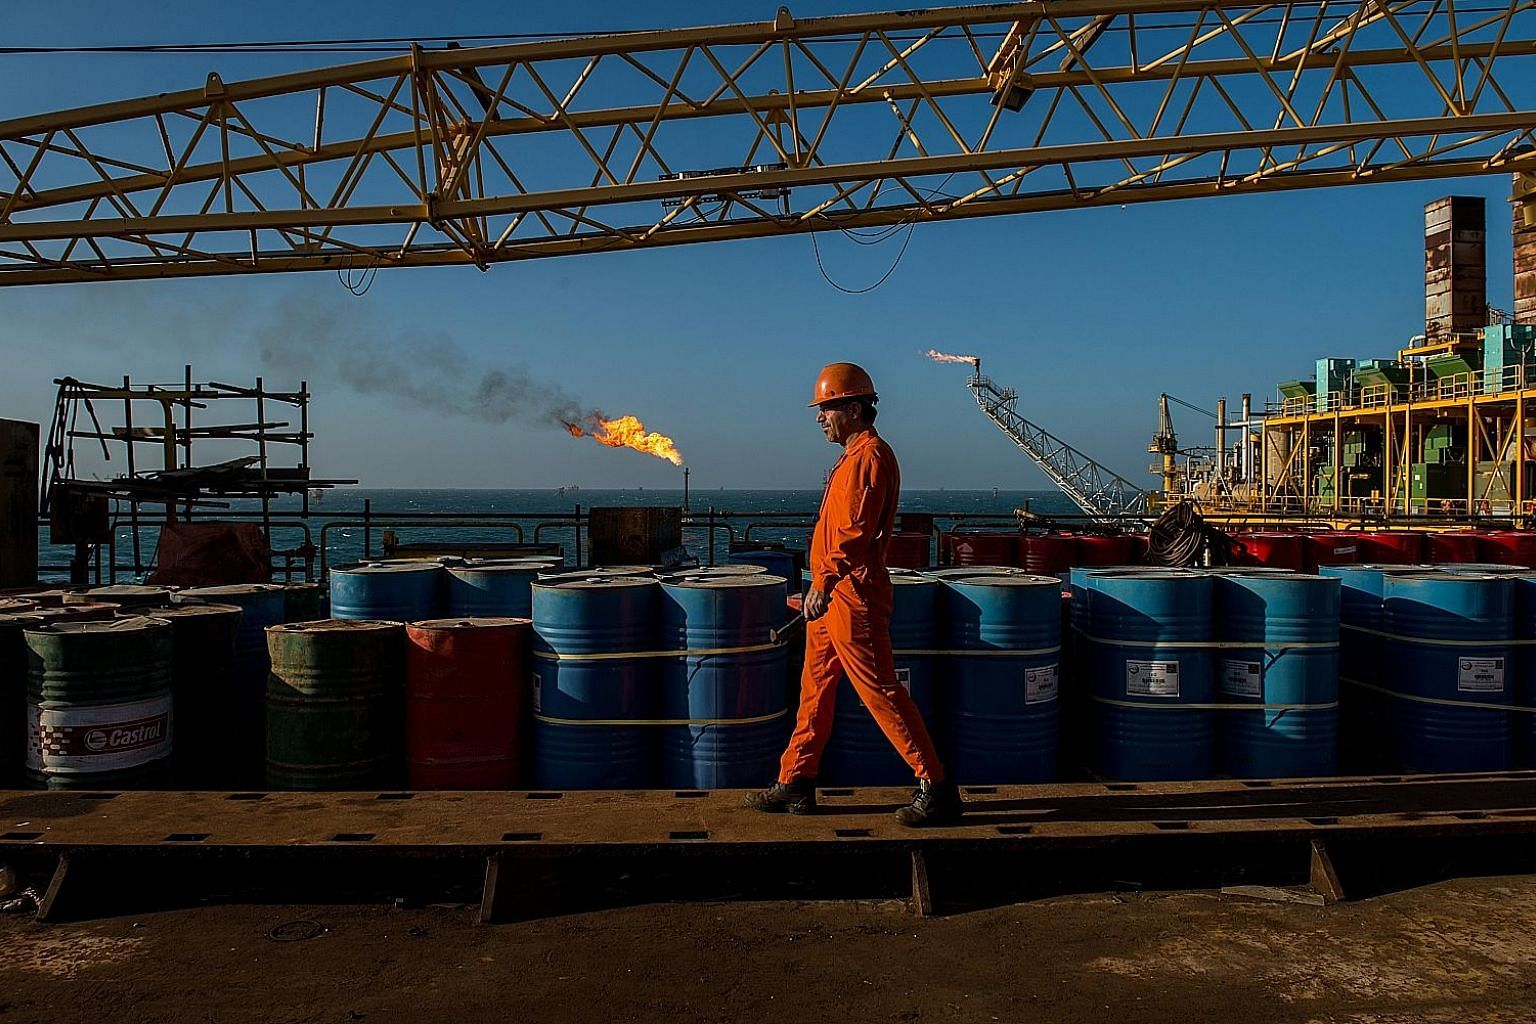 An Iranian oil field. The US on Monday exempted some economies which are big importers of Iranian oil - such as China, India, Japan, South Korea, Taiwan, as well as Italy and Greece, two EU members - from its Iran sanctions. But the exemptions are on